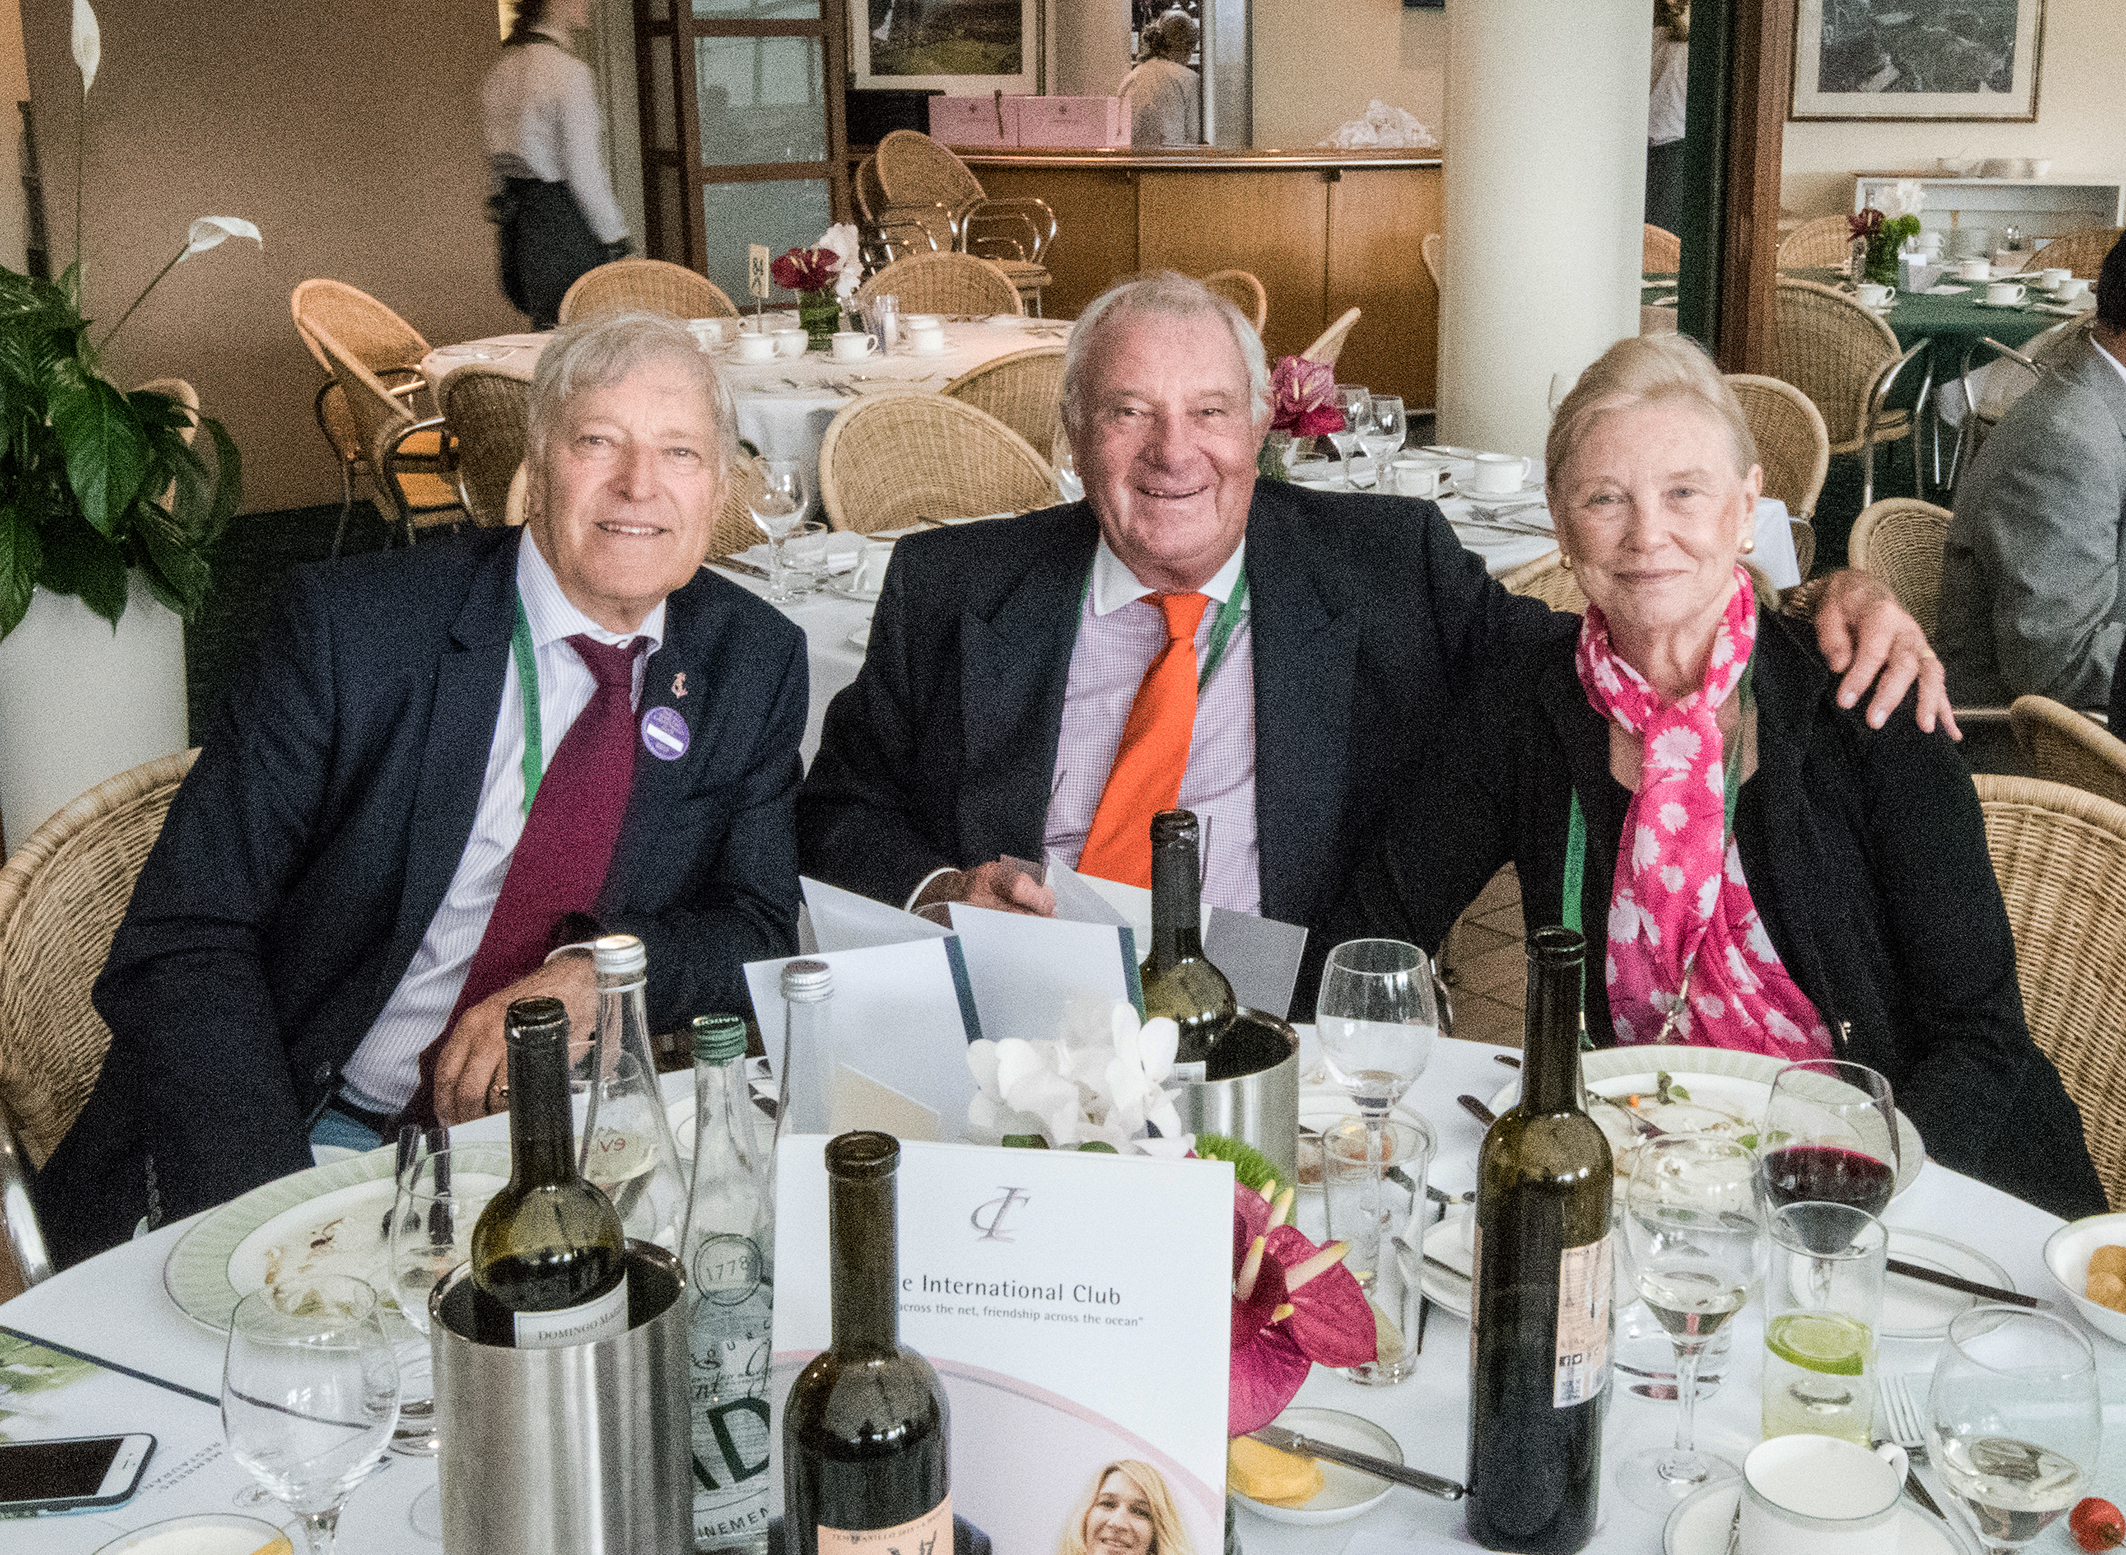 The annual lunch for Presidents and Secretaries at Wimbledon